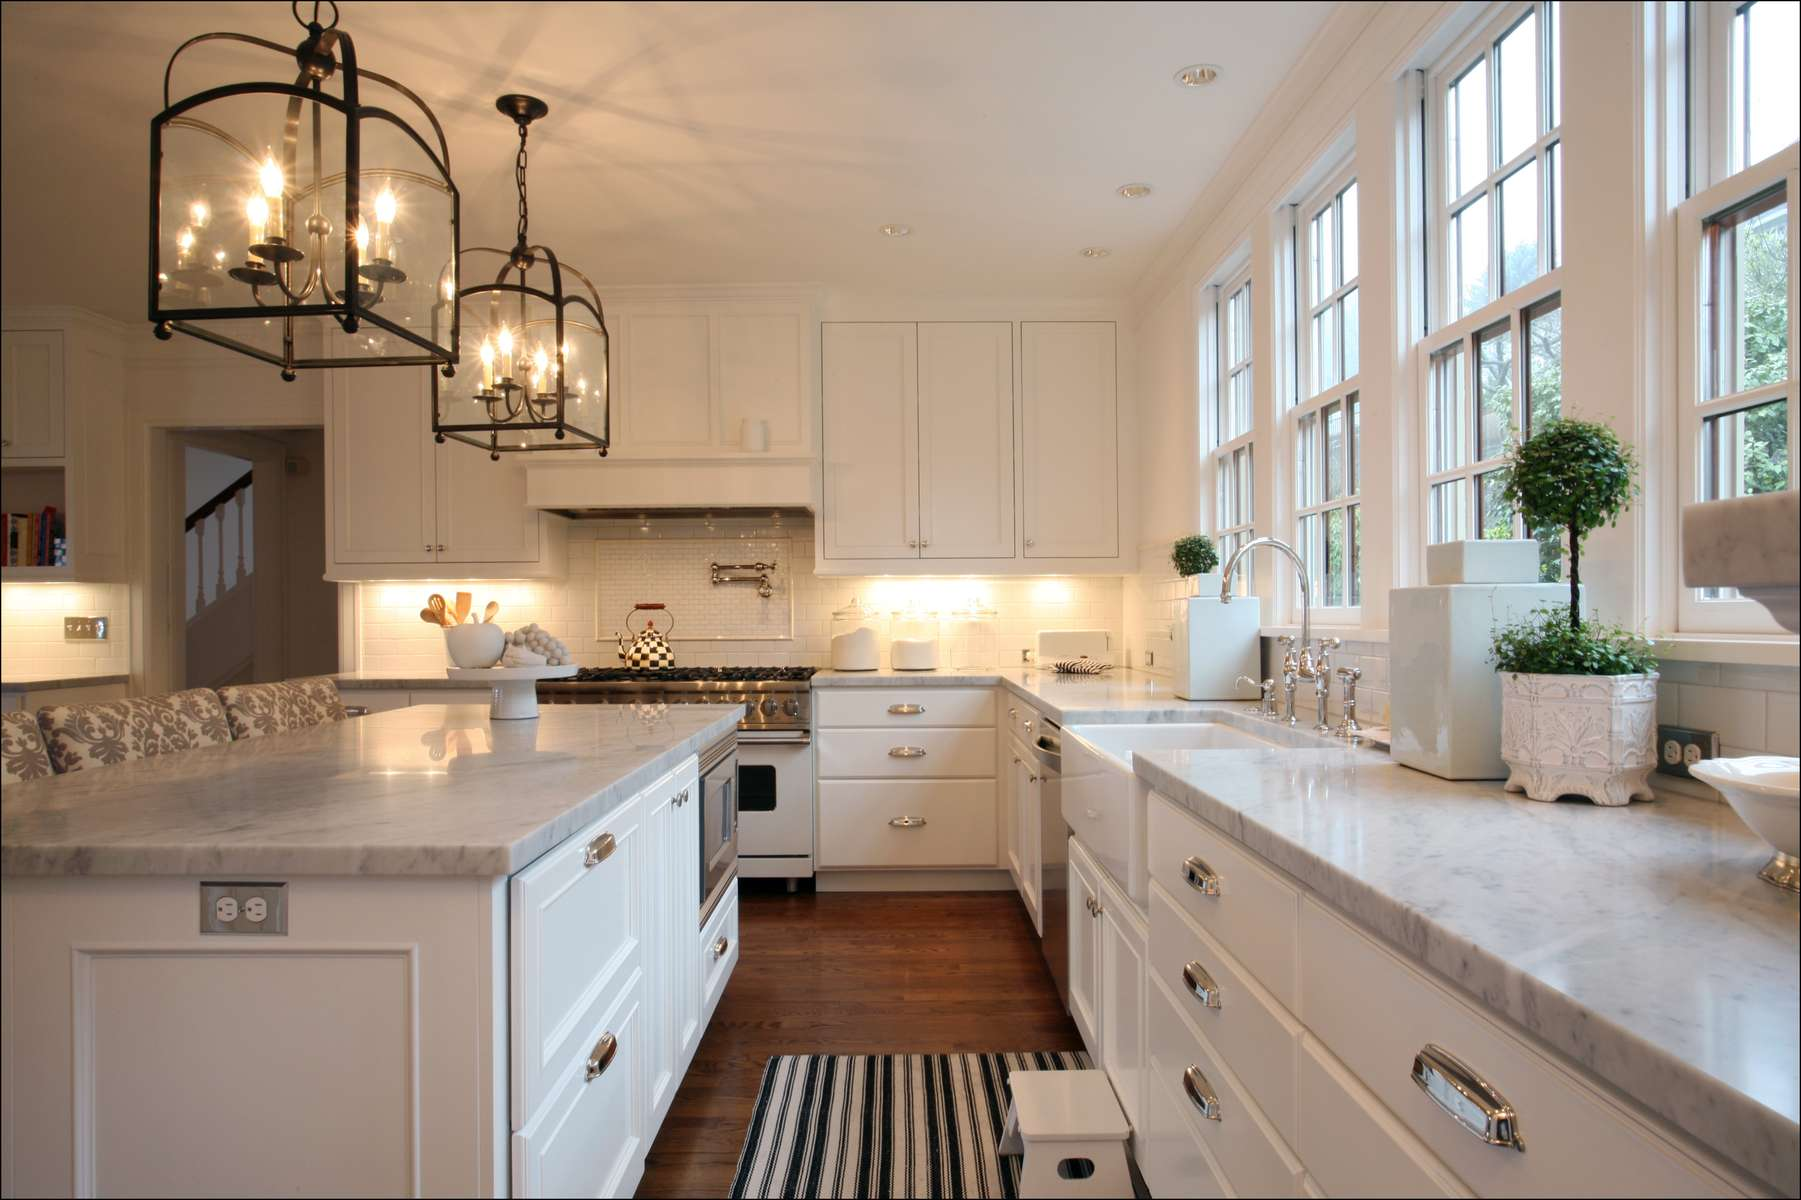 Image Gallery Home Renovations Kitchen Colonial